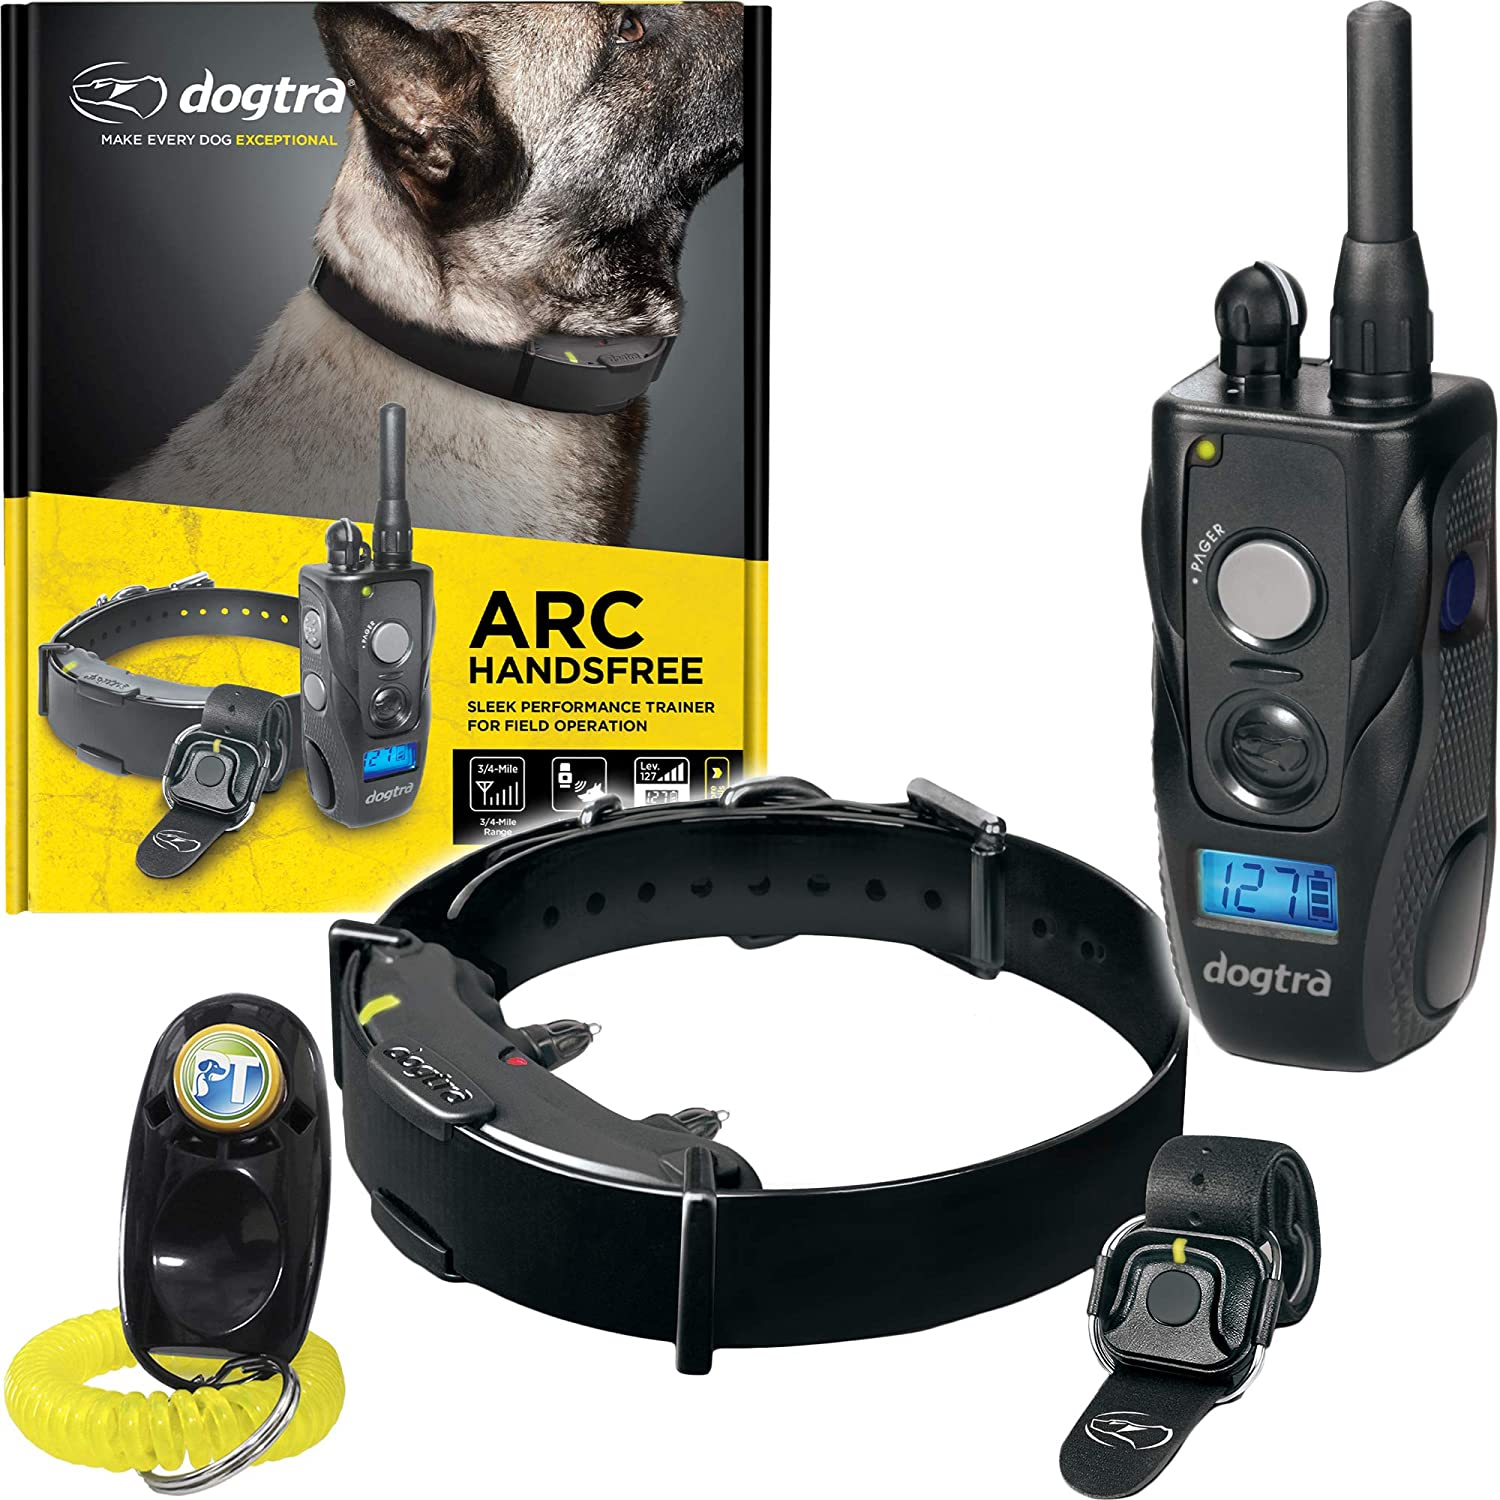 Dogtra ARC HANDSFREE Remote Training Dog Collar – 3 4 Mile Range, Hands Free Remote Controller, Waterproof, Rechargeable, Shock, Vibration – Includes PetsTEK Dog Training Clicker